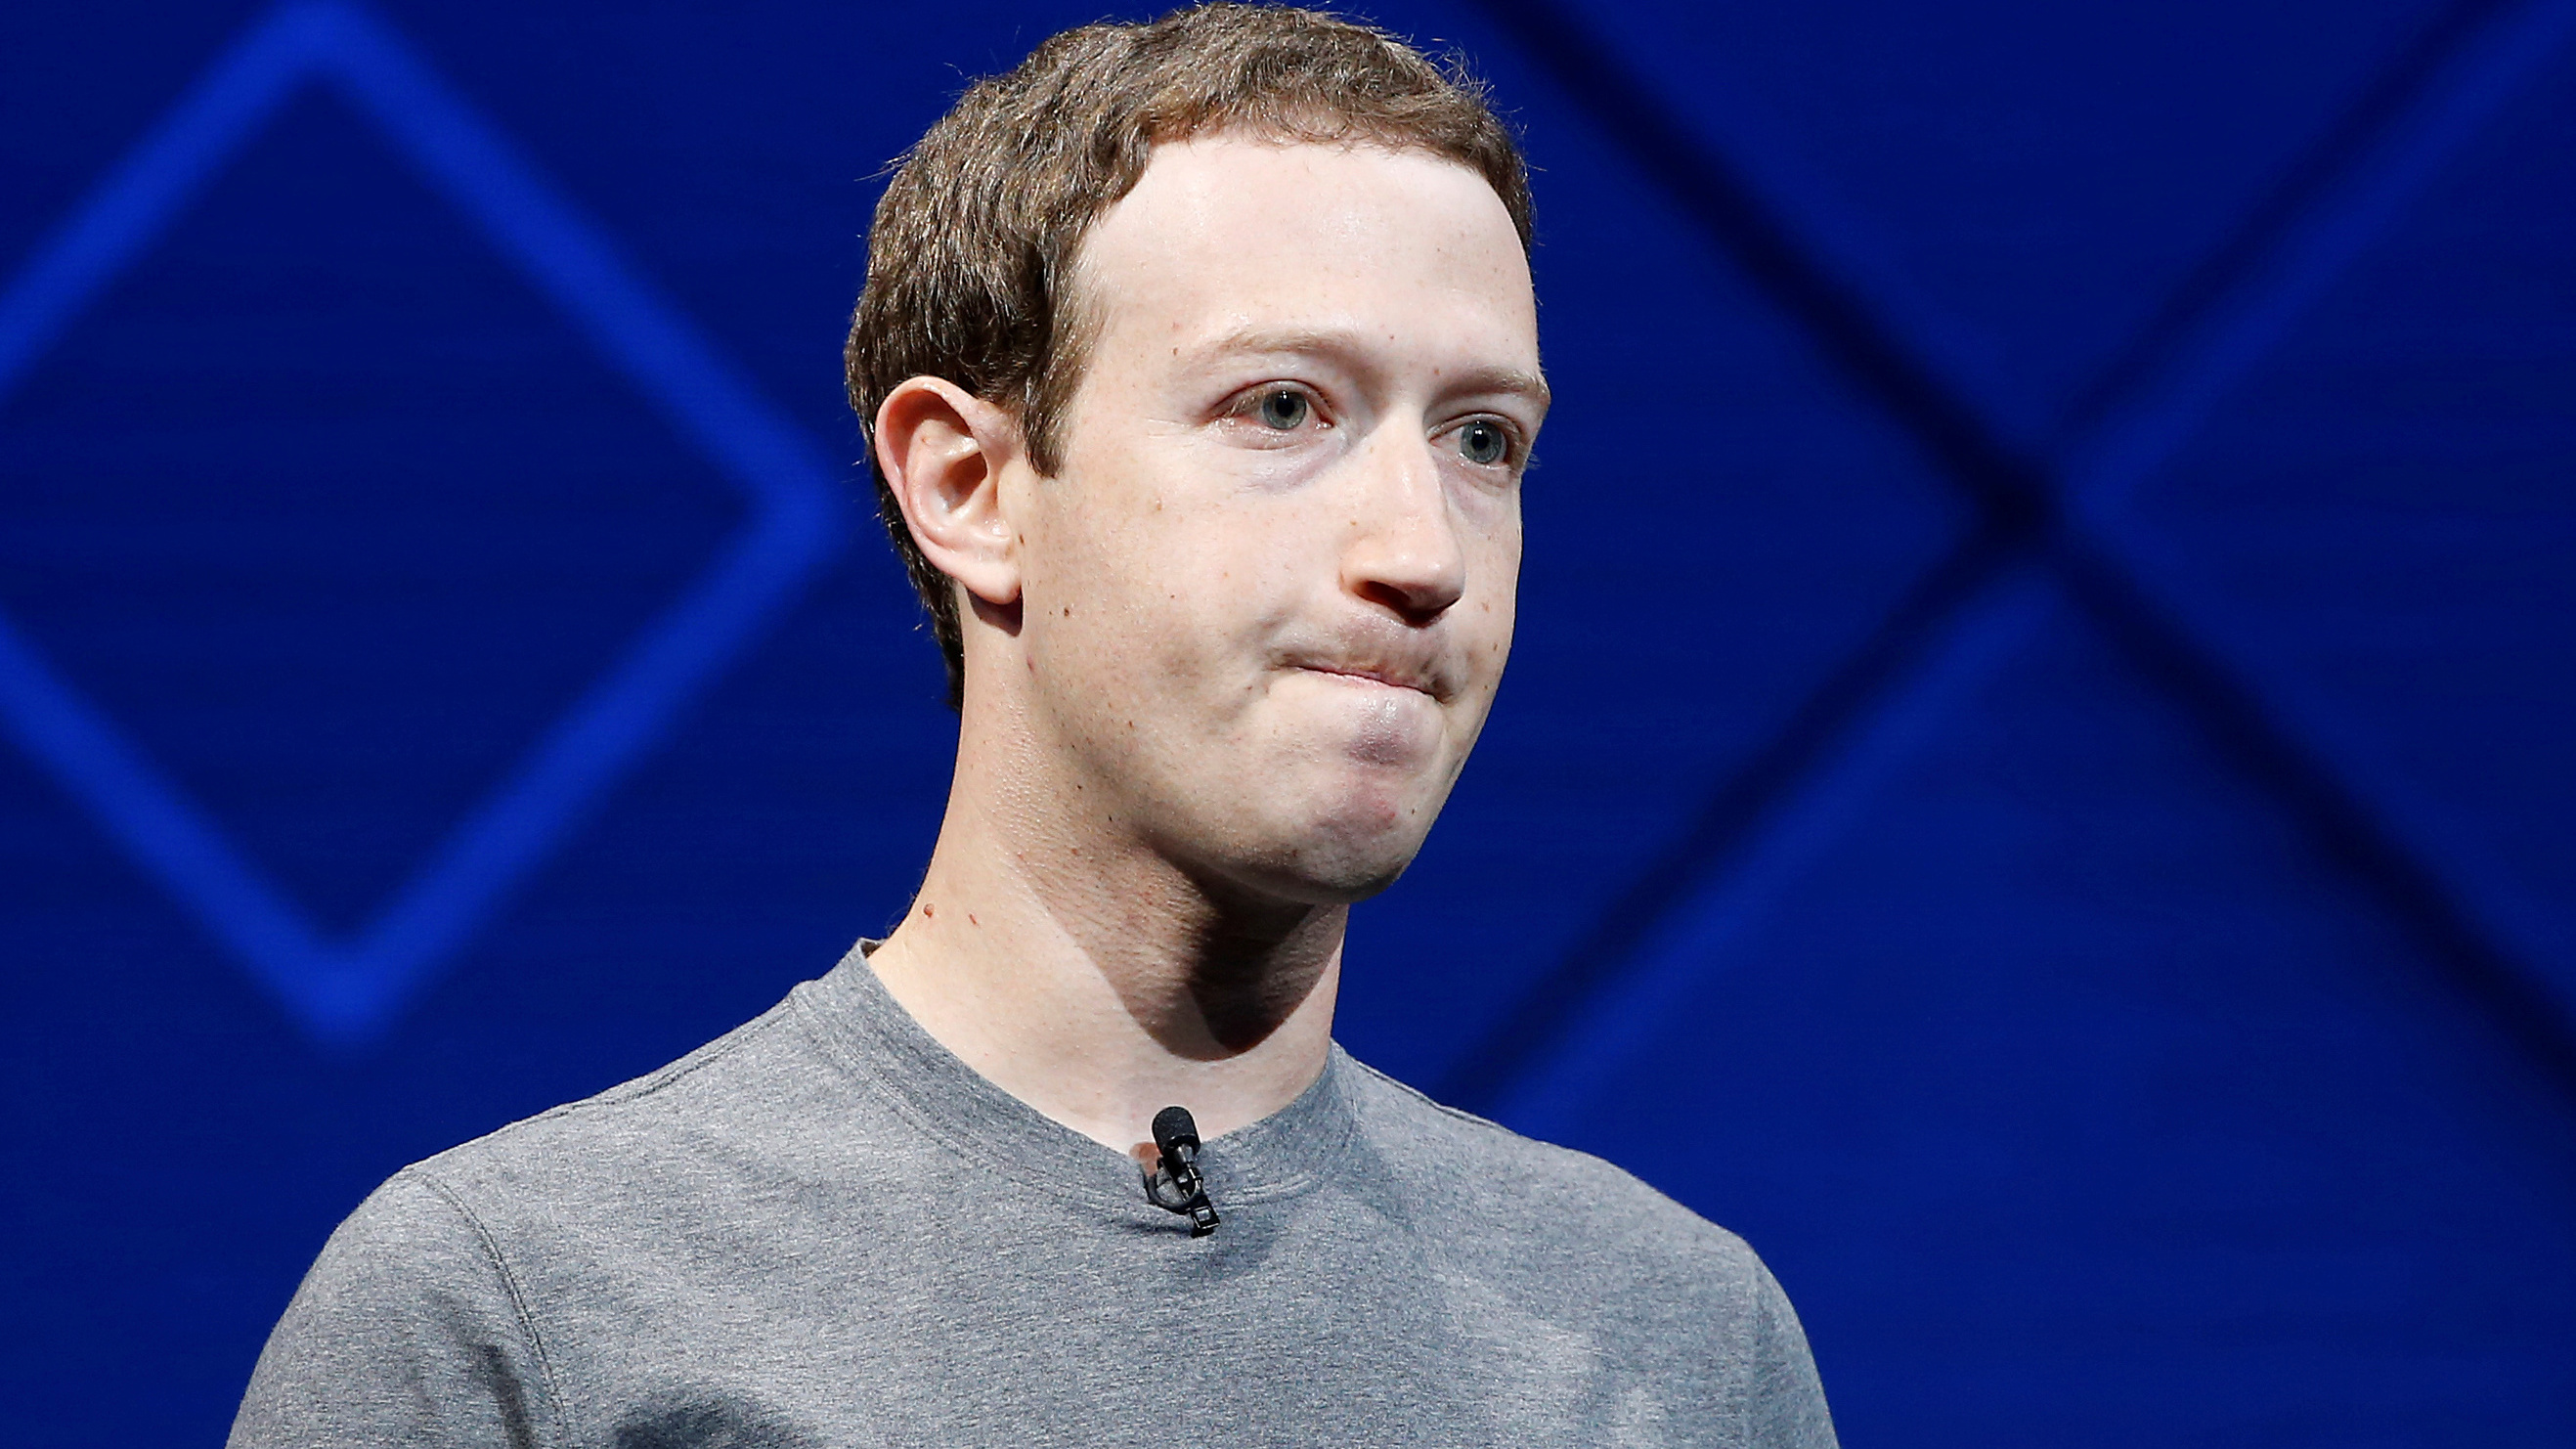 Facebook CEO Mark Zuckerberg will visit Capitol Hill to discuss consumer data privacy issues, the heads of a House panel said on Wednesday.